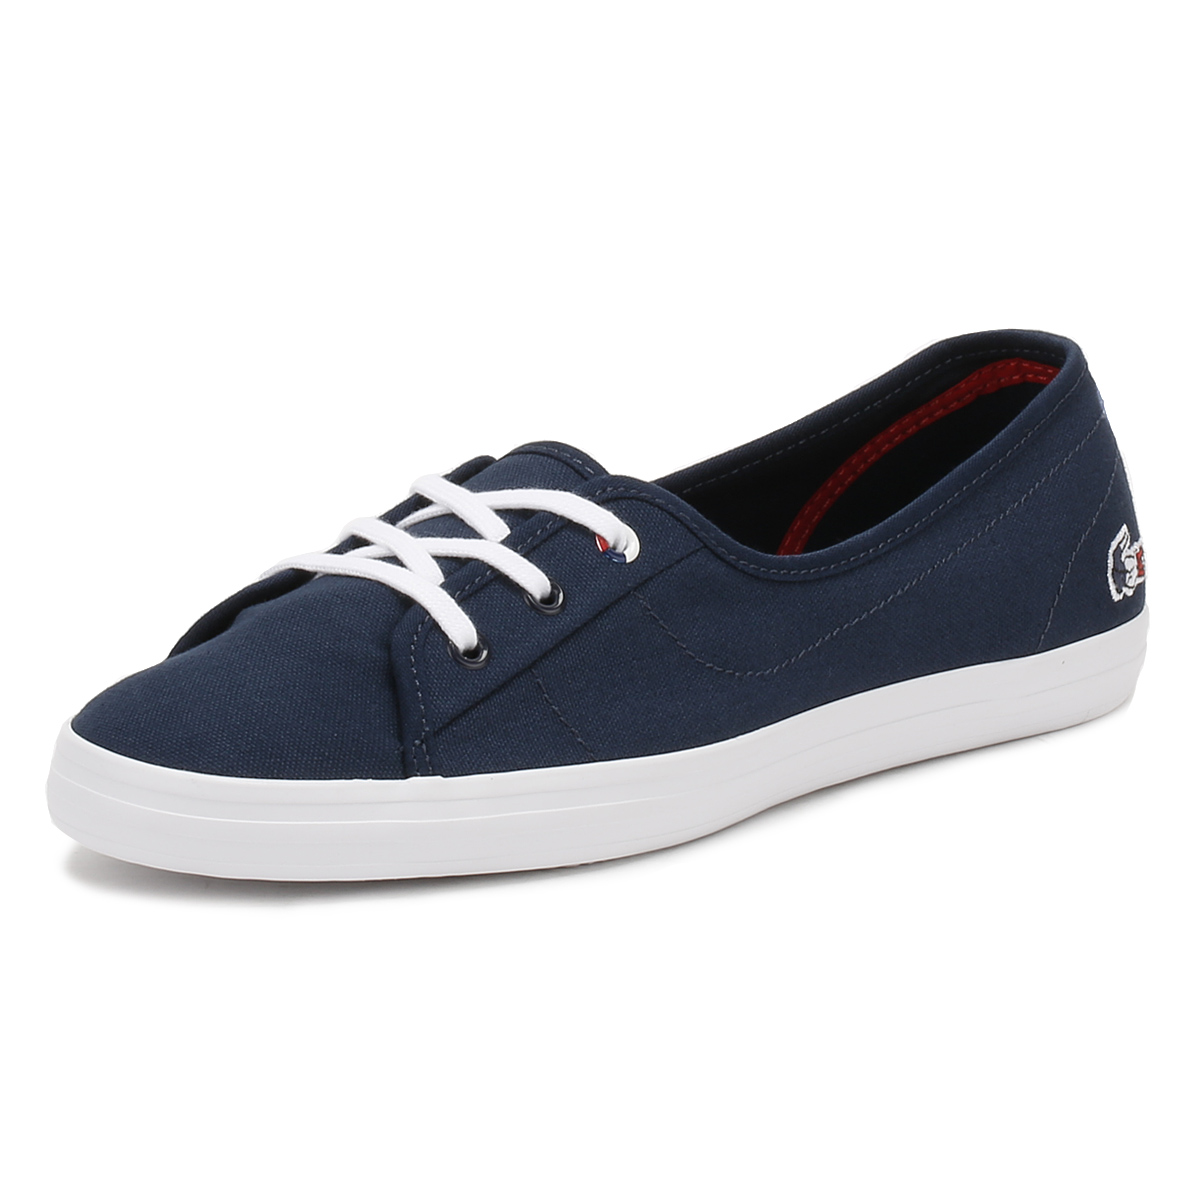 Lacoste-Womens-Navy-Blue-or-White-Ziane-Chunky-